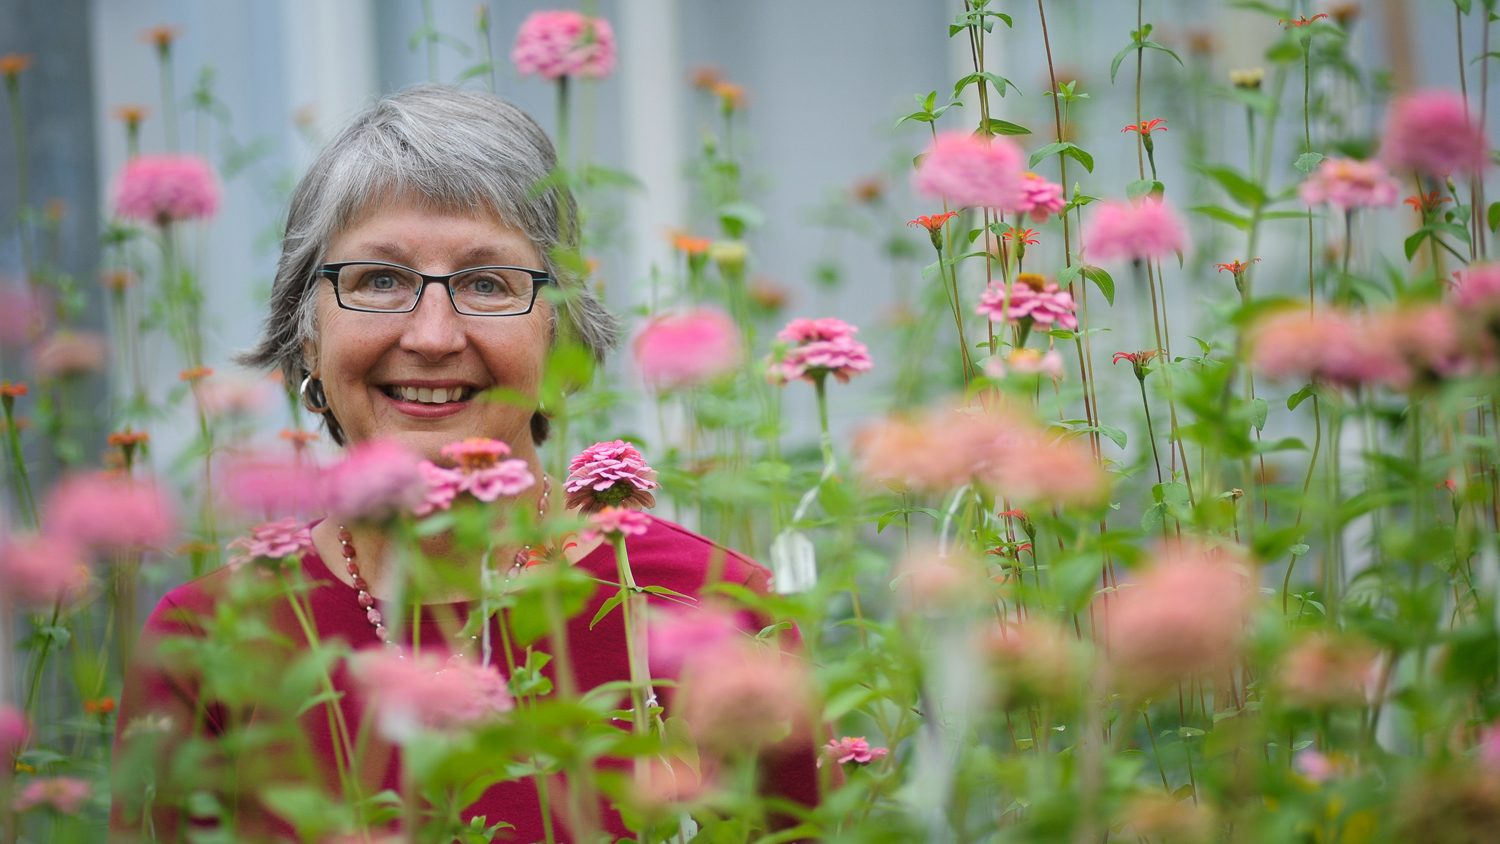 NC State University horticulture professor Julia Kornegay poses amongst pink flowers.